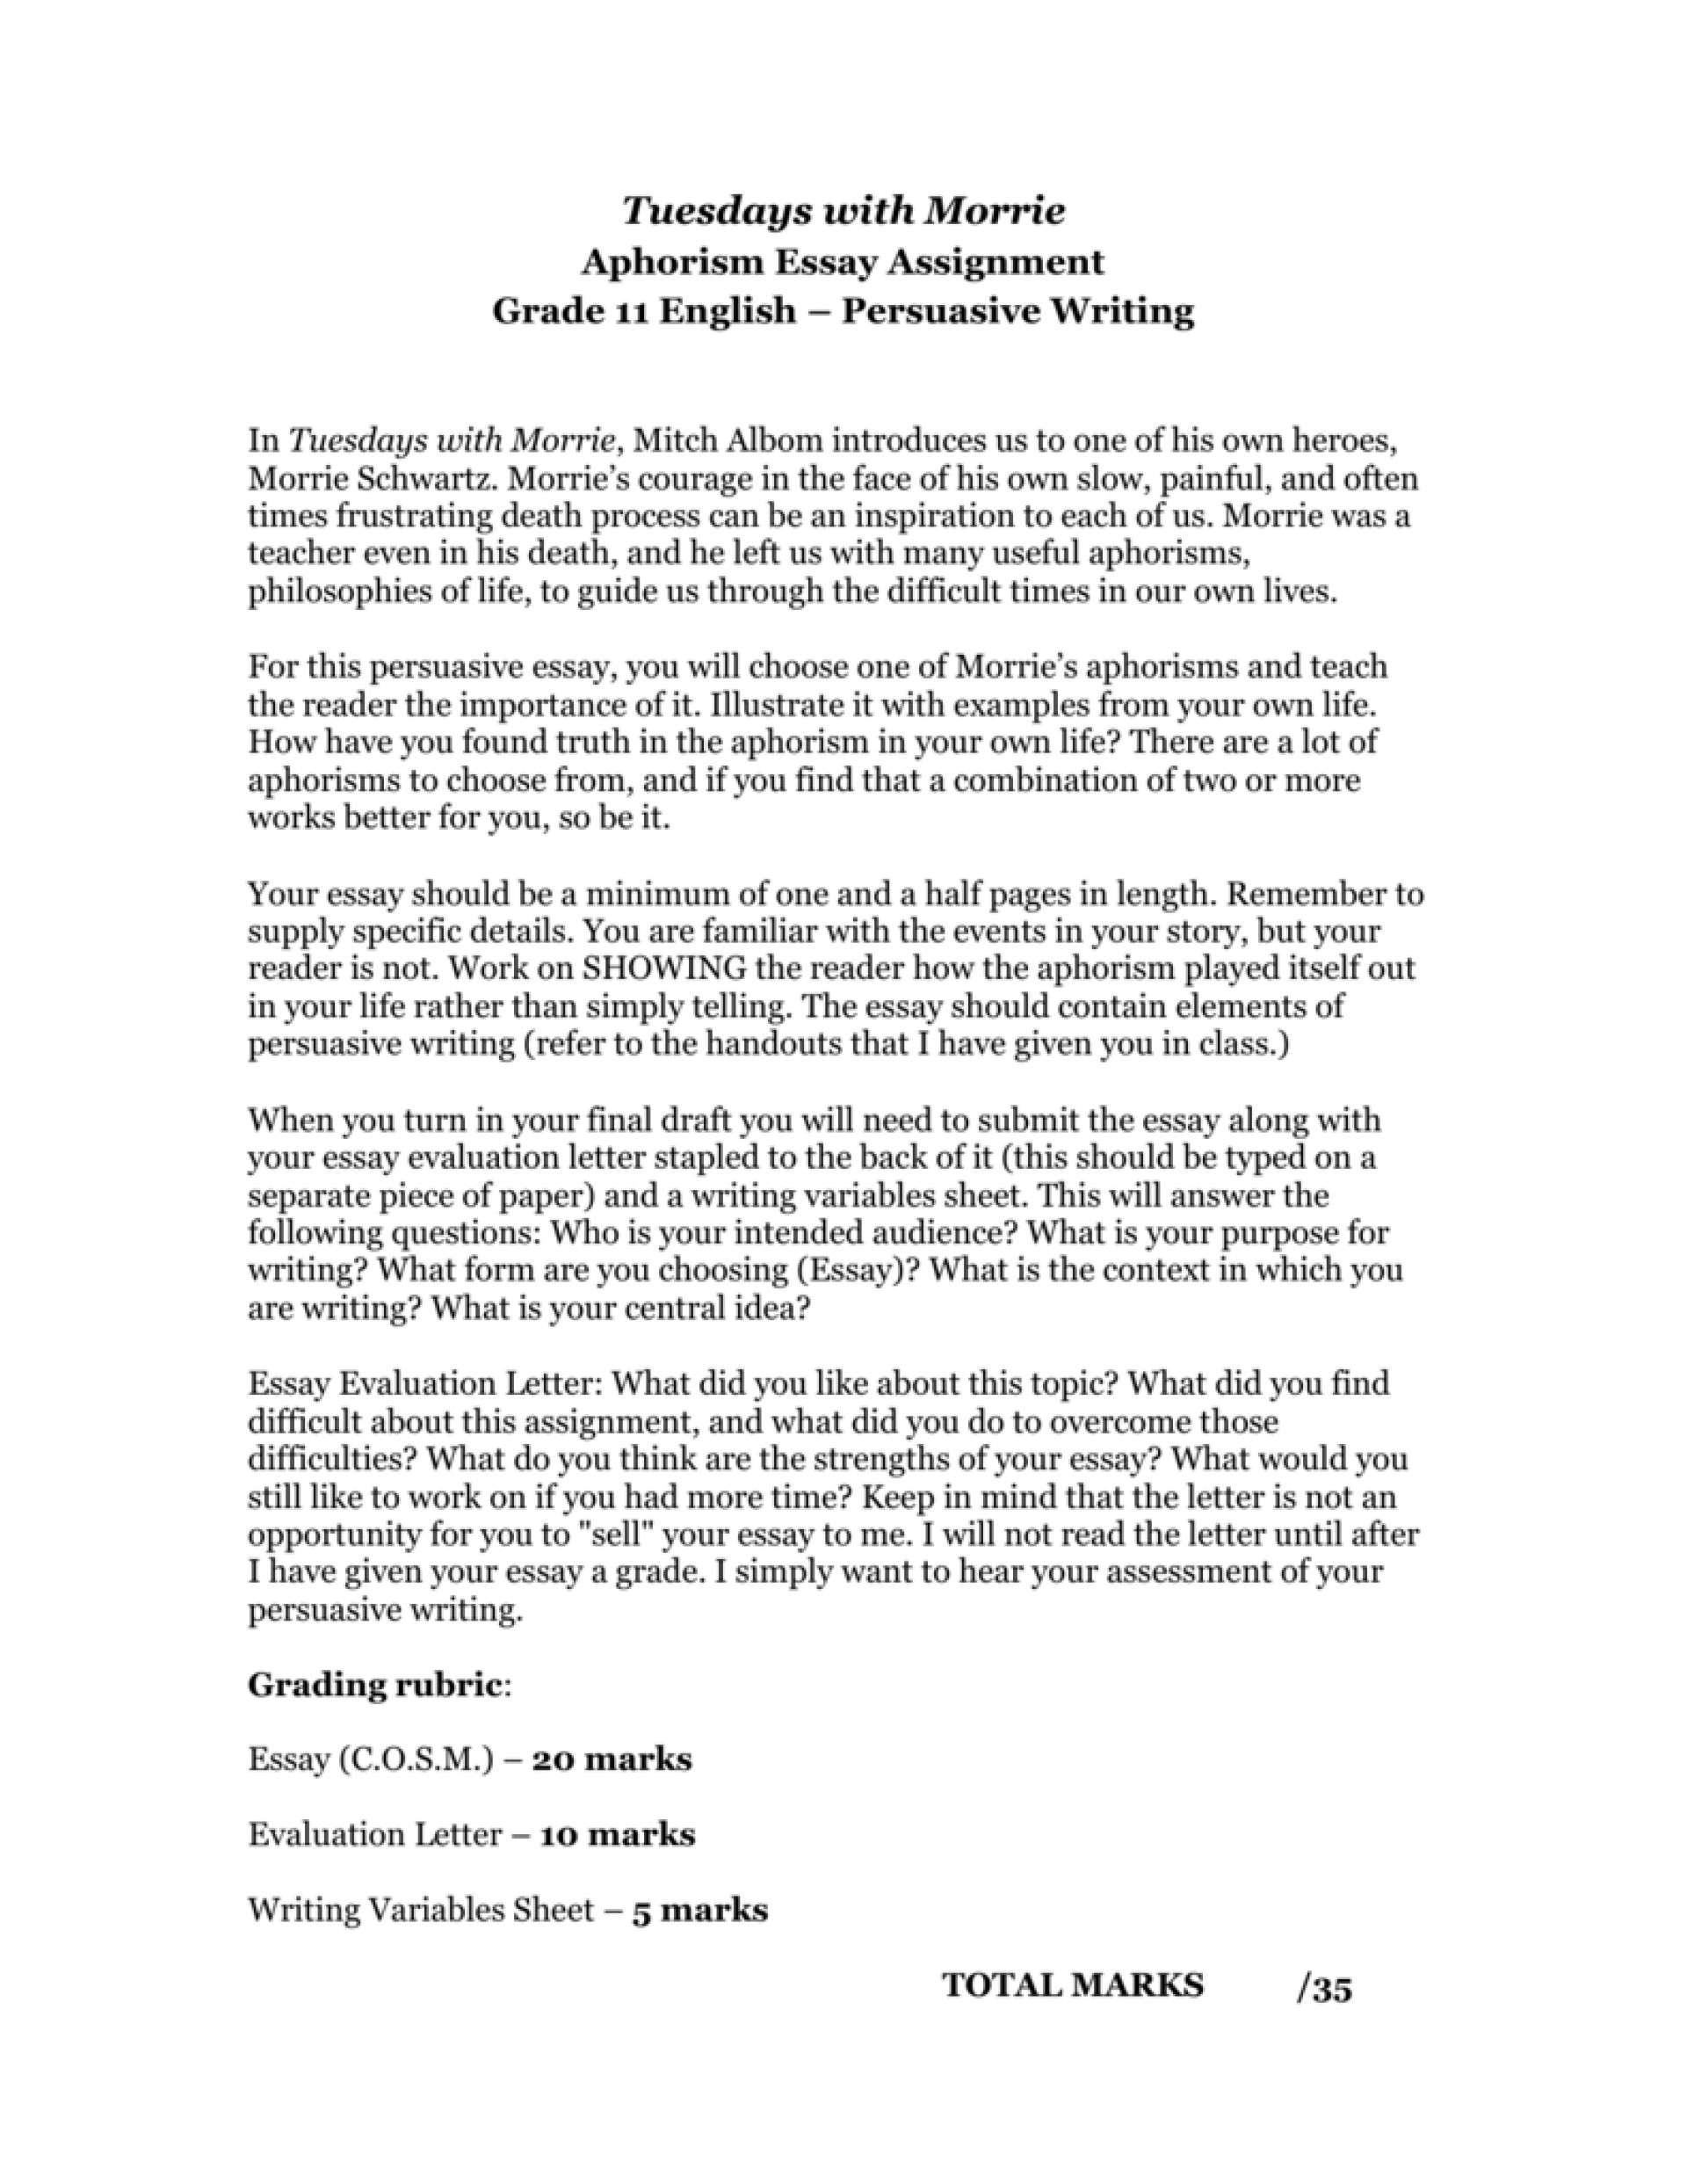 006 Tuesdays With Morrie Essay 008907930 1 Striking Topics Writing Prompts Paper 1920